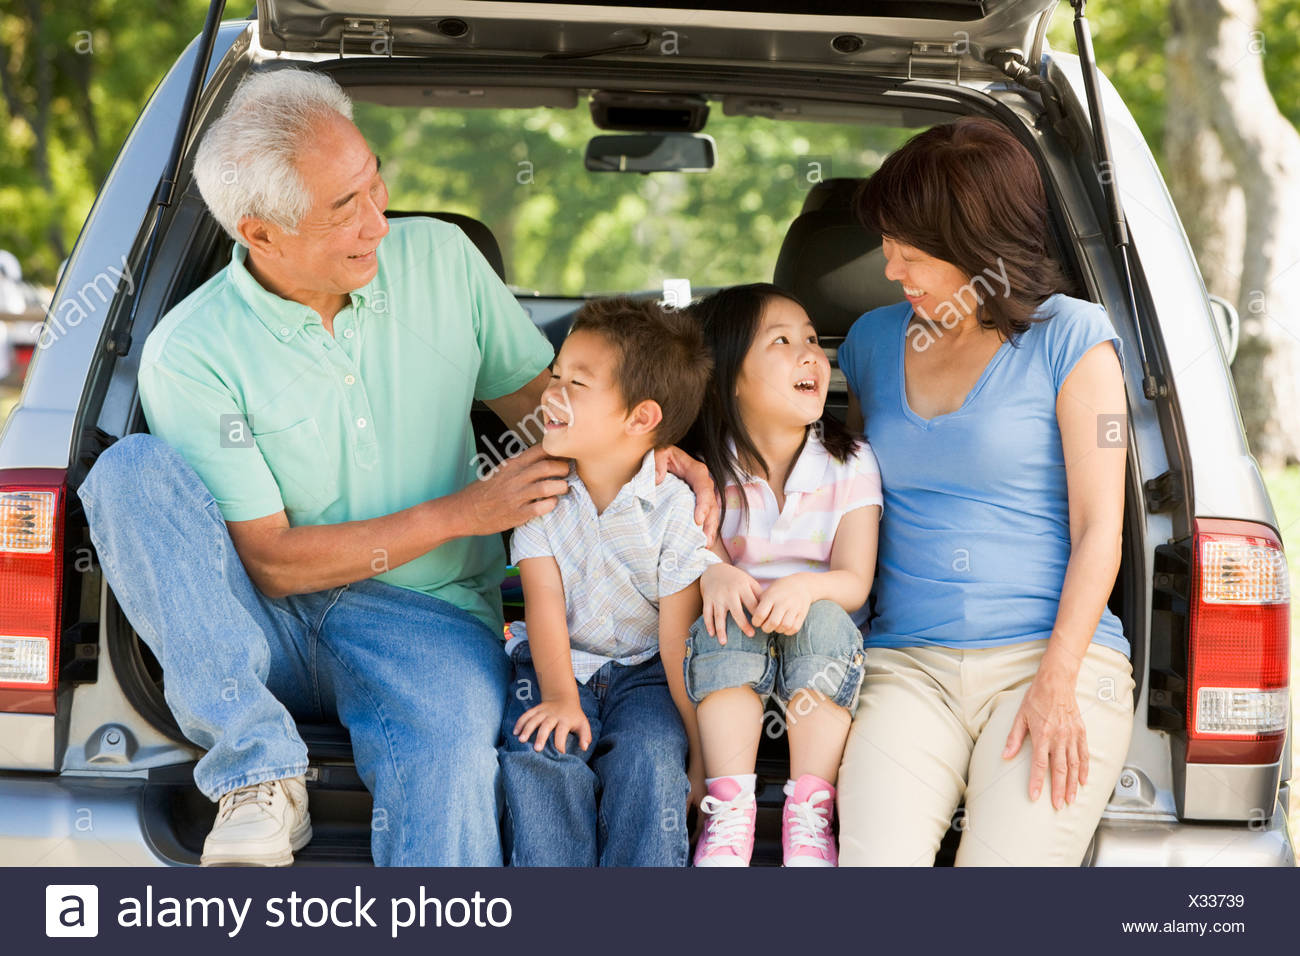 Grandparents with grandkids in tailgate of car - Stock Image